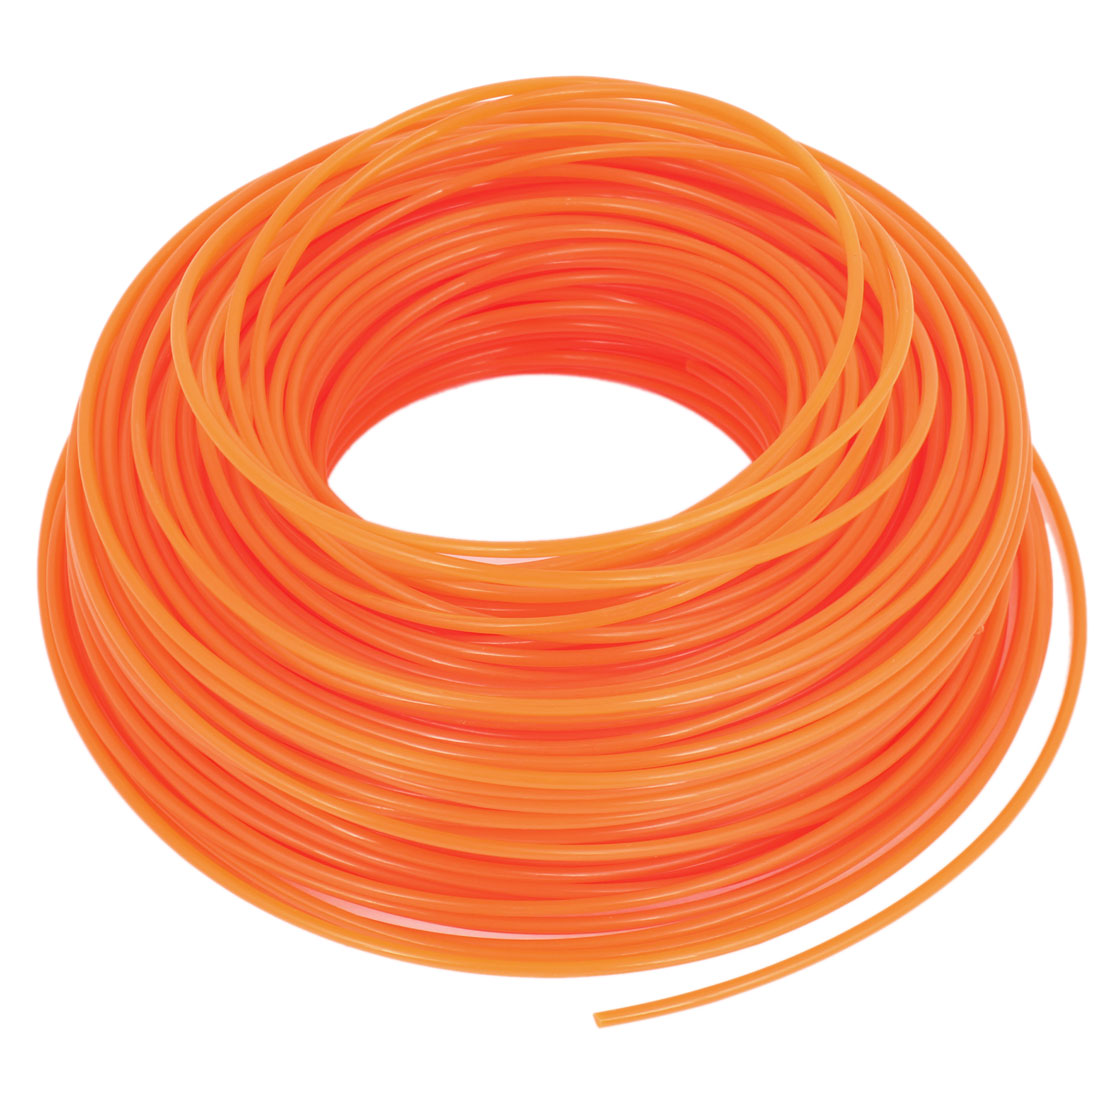 Park 220ft 67 Meters Round Orange Nylon Line for Grass Trimmer